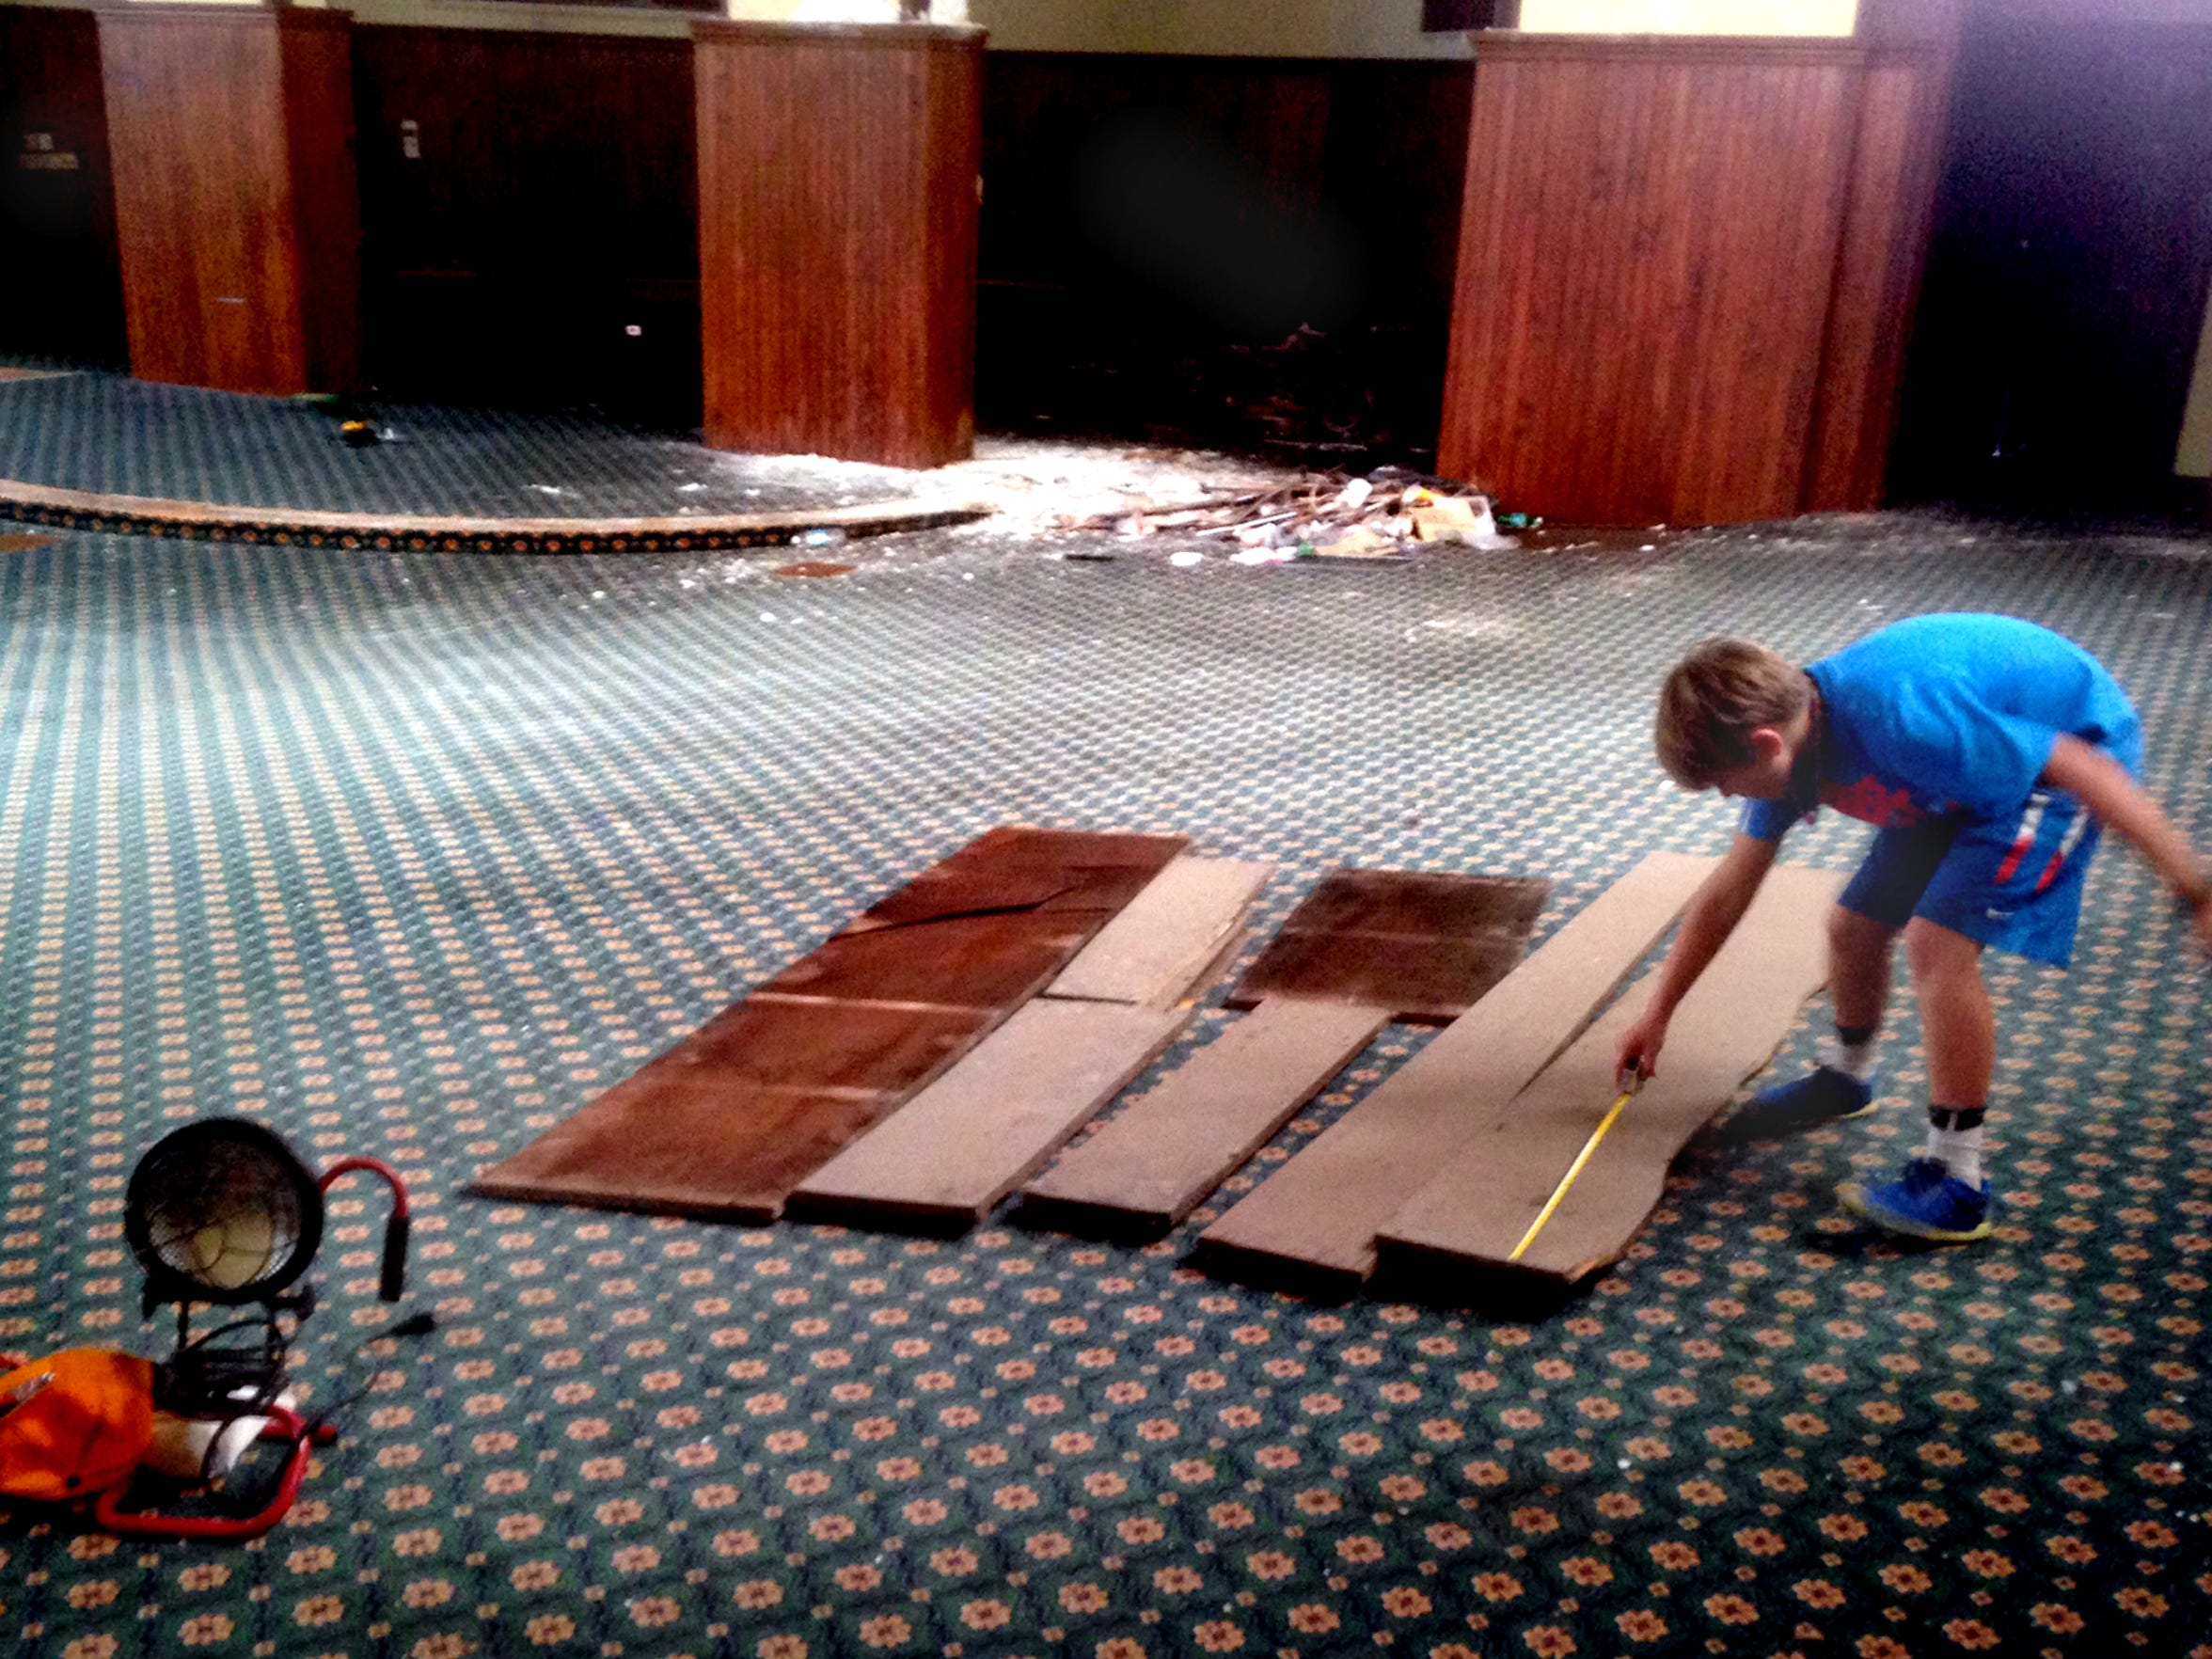 Andrew Gaines, 10, measures boards on the former sanctuary floor of First United Methodist Church. He joined family members and others from the congregation to recover boards from the bell tower of a former church building that dates back to 1888. The congregation relocated to West Thompson Lane by the Siegel School in 2003.